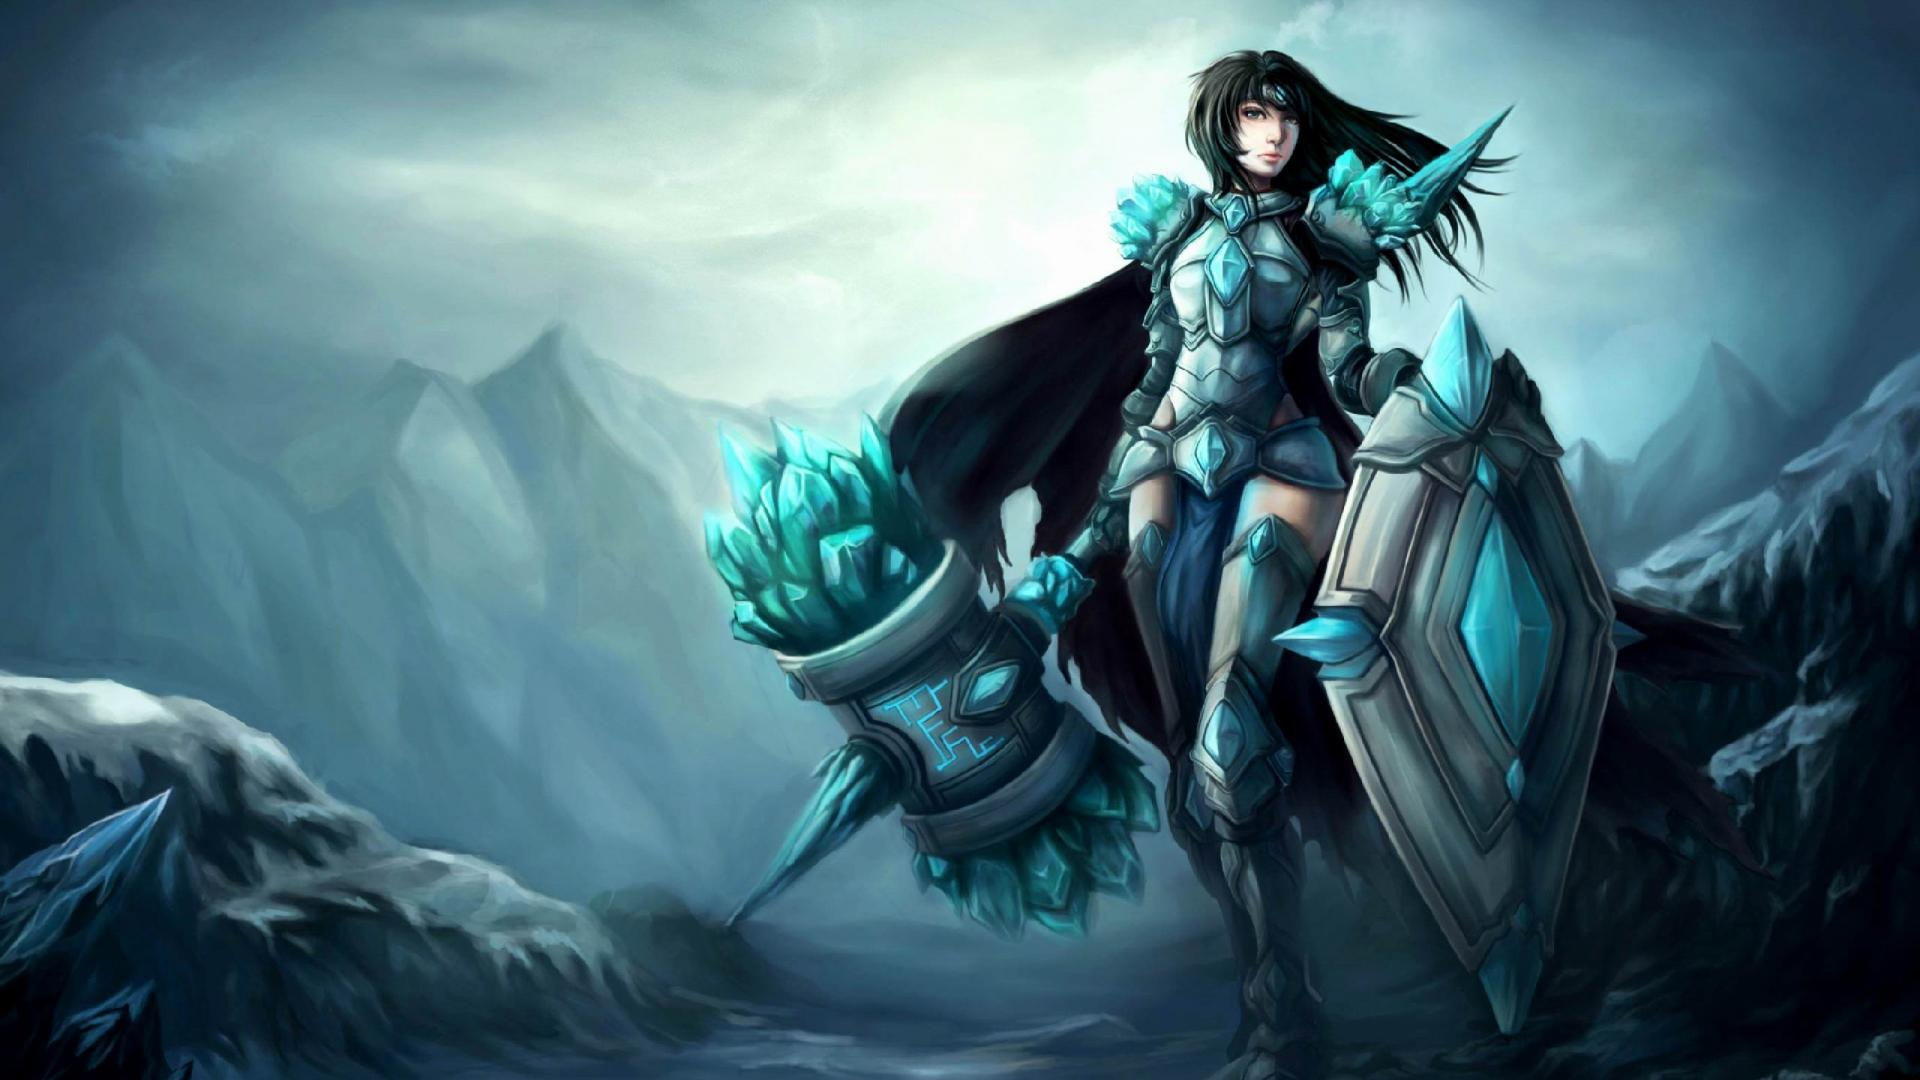 Stunning Hd Fantasy Gaming Desktop Wallpapers: Fantasy-Girl-Game-Wallpaper-HD-fantasy-girls-HD-wallpapers